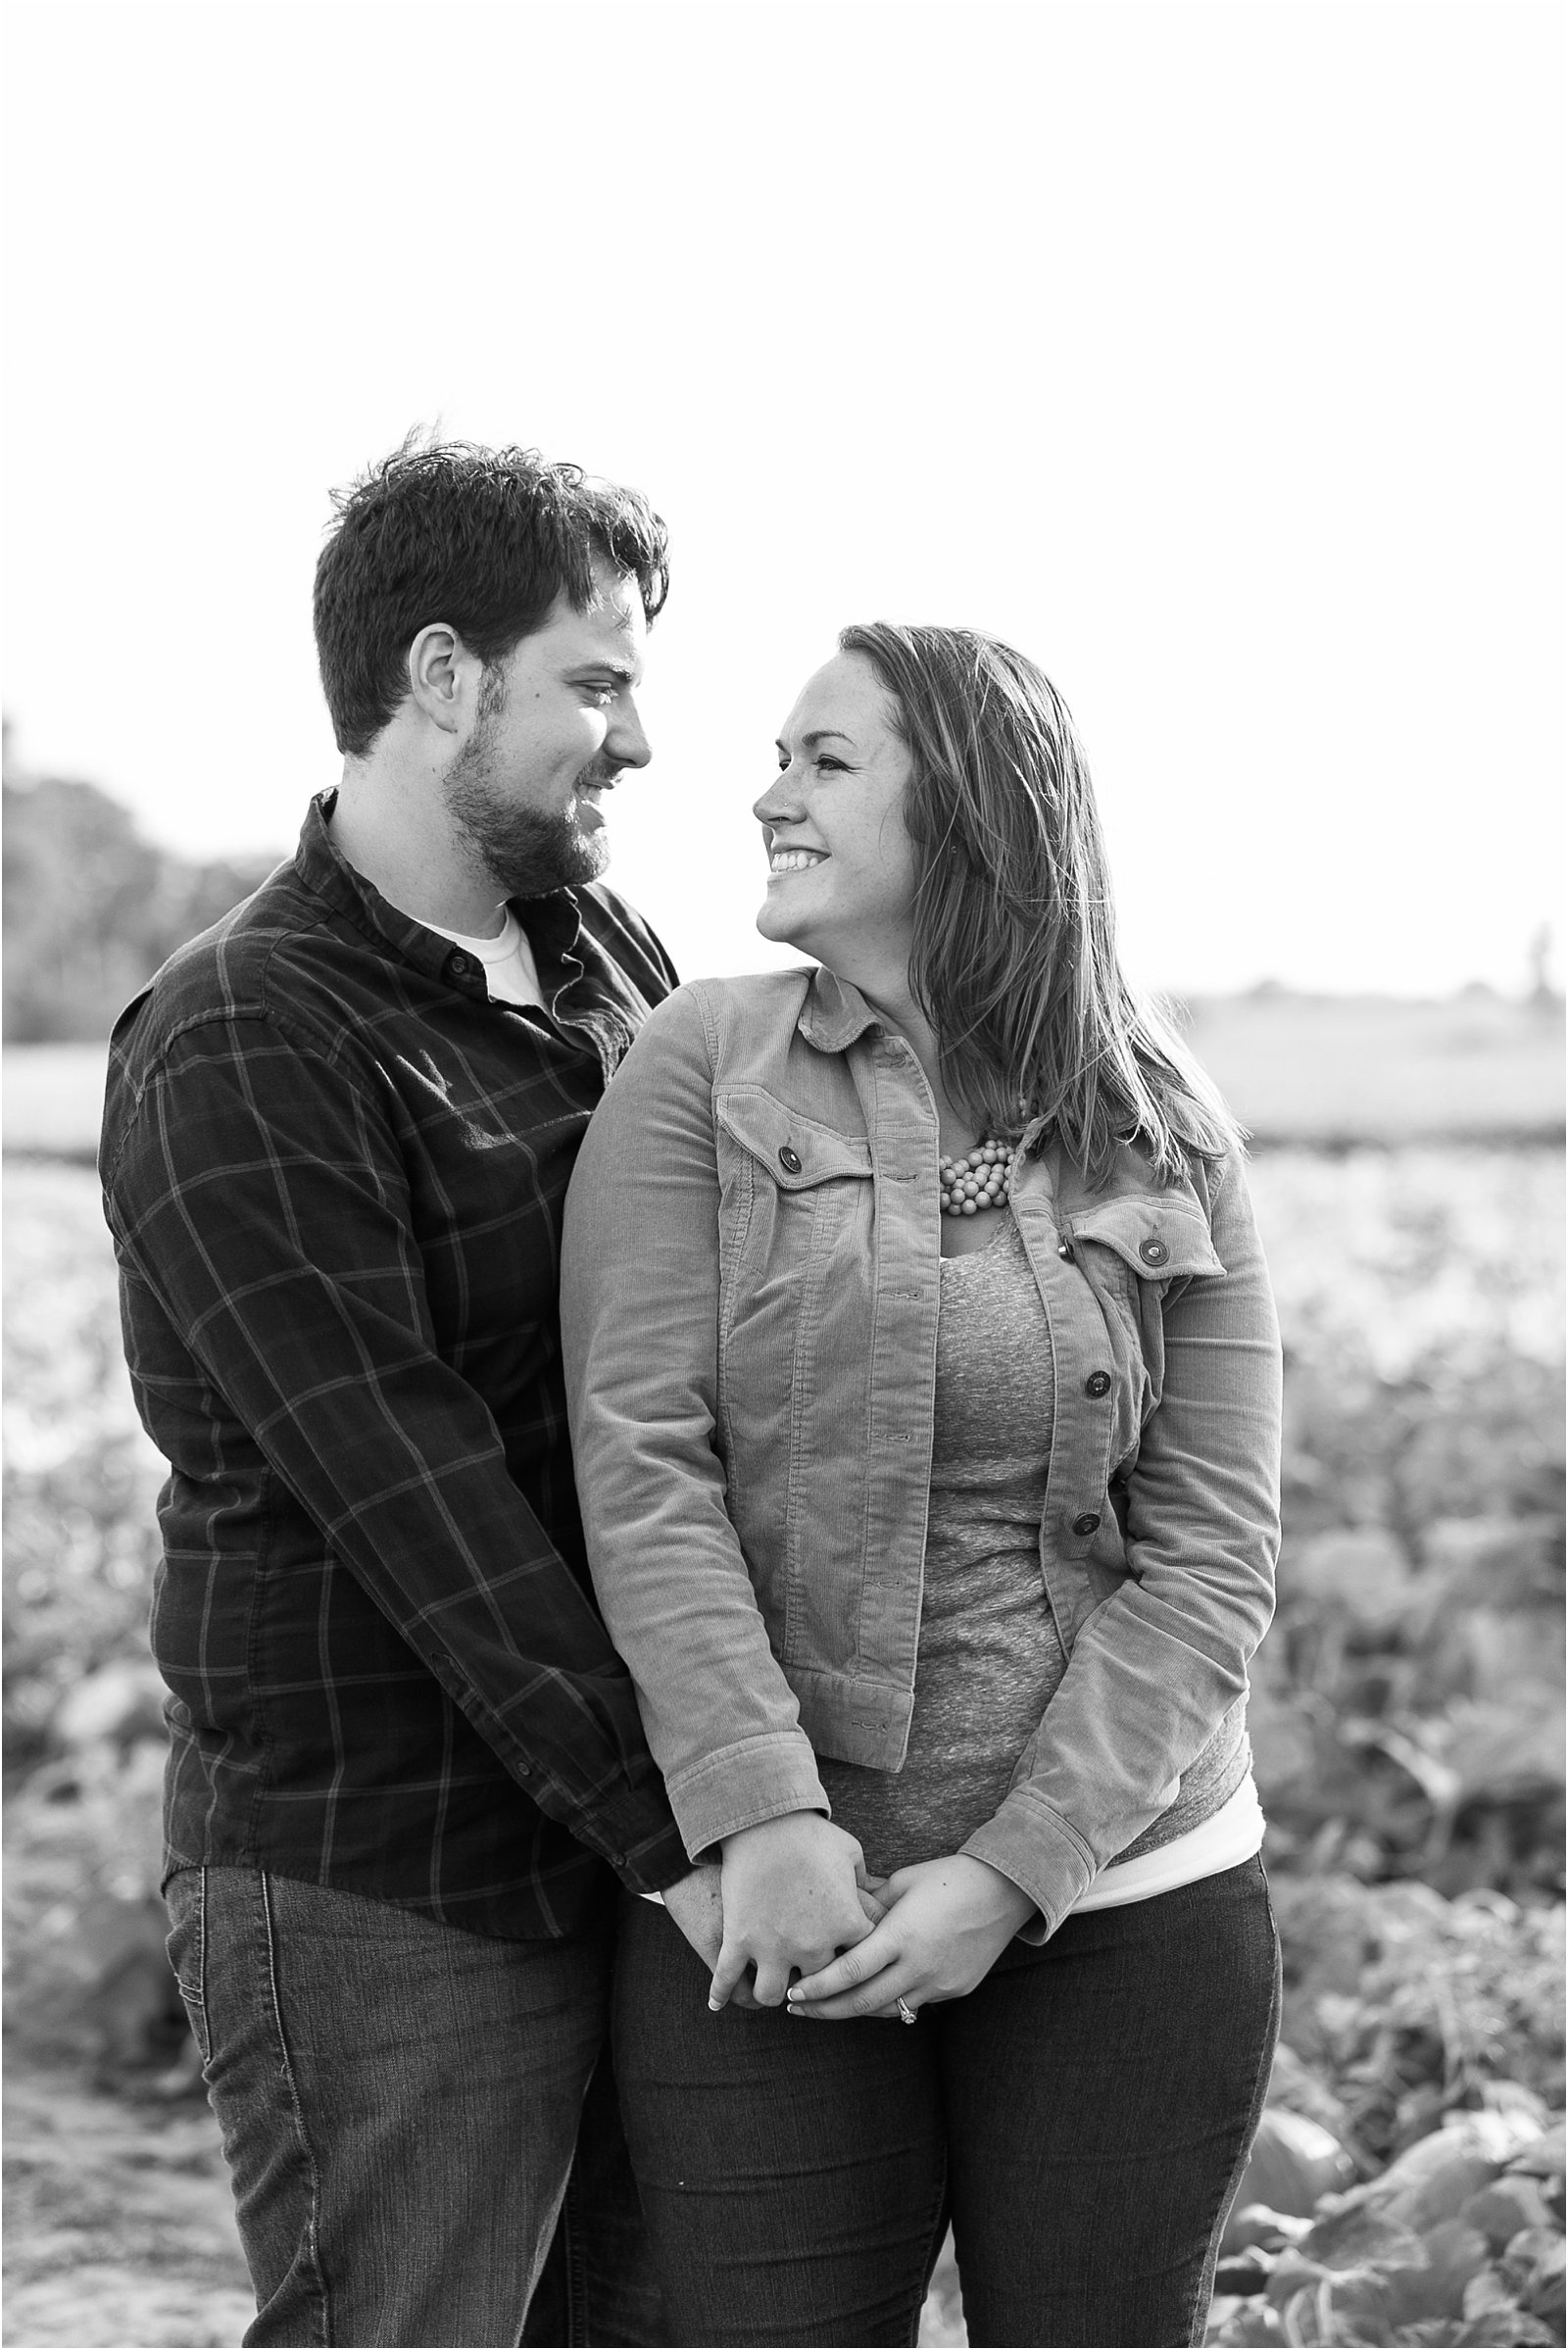 jessica_ryan_photography_pumpkin_patch_engagement_portraits_fall_october_engagements_virginia_beach_chesapeake_0290